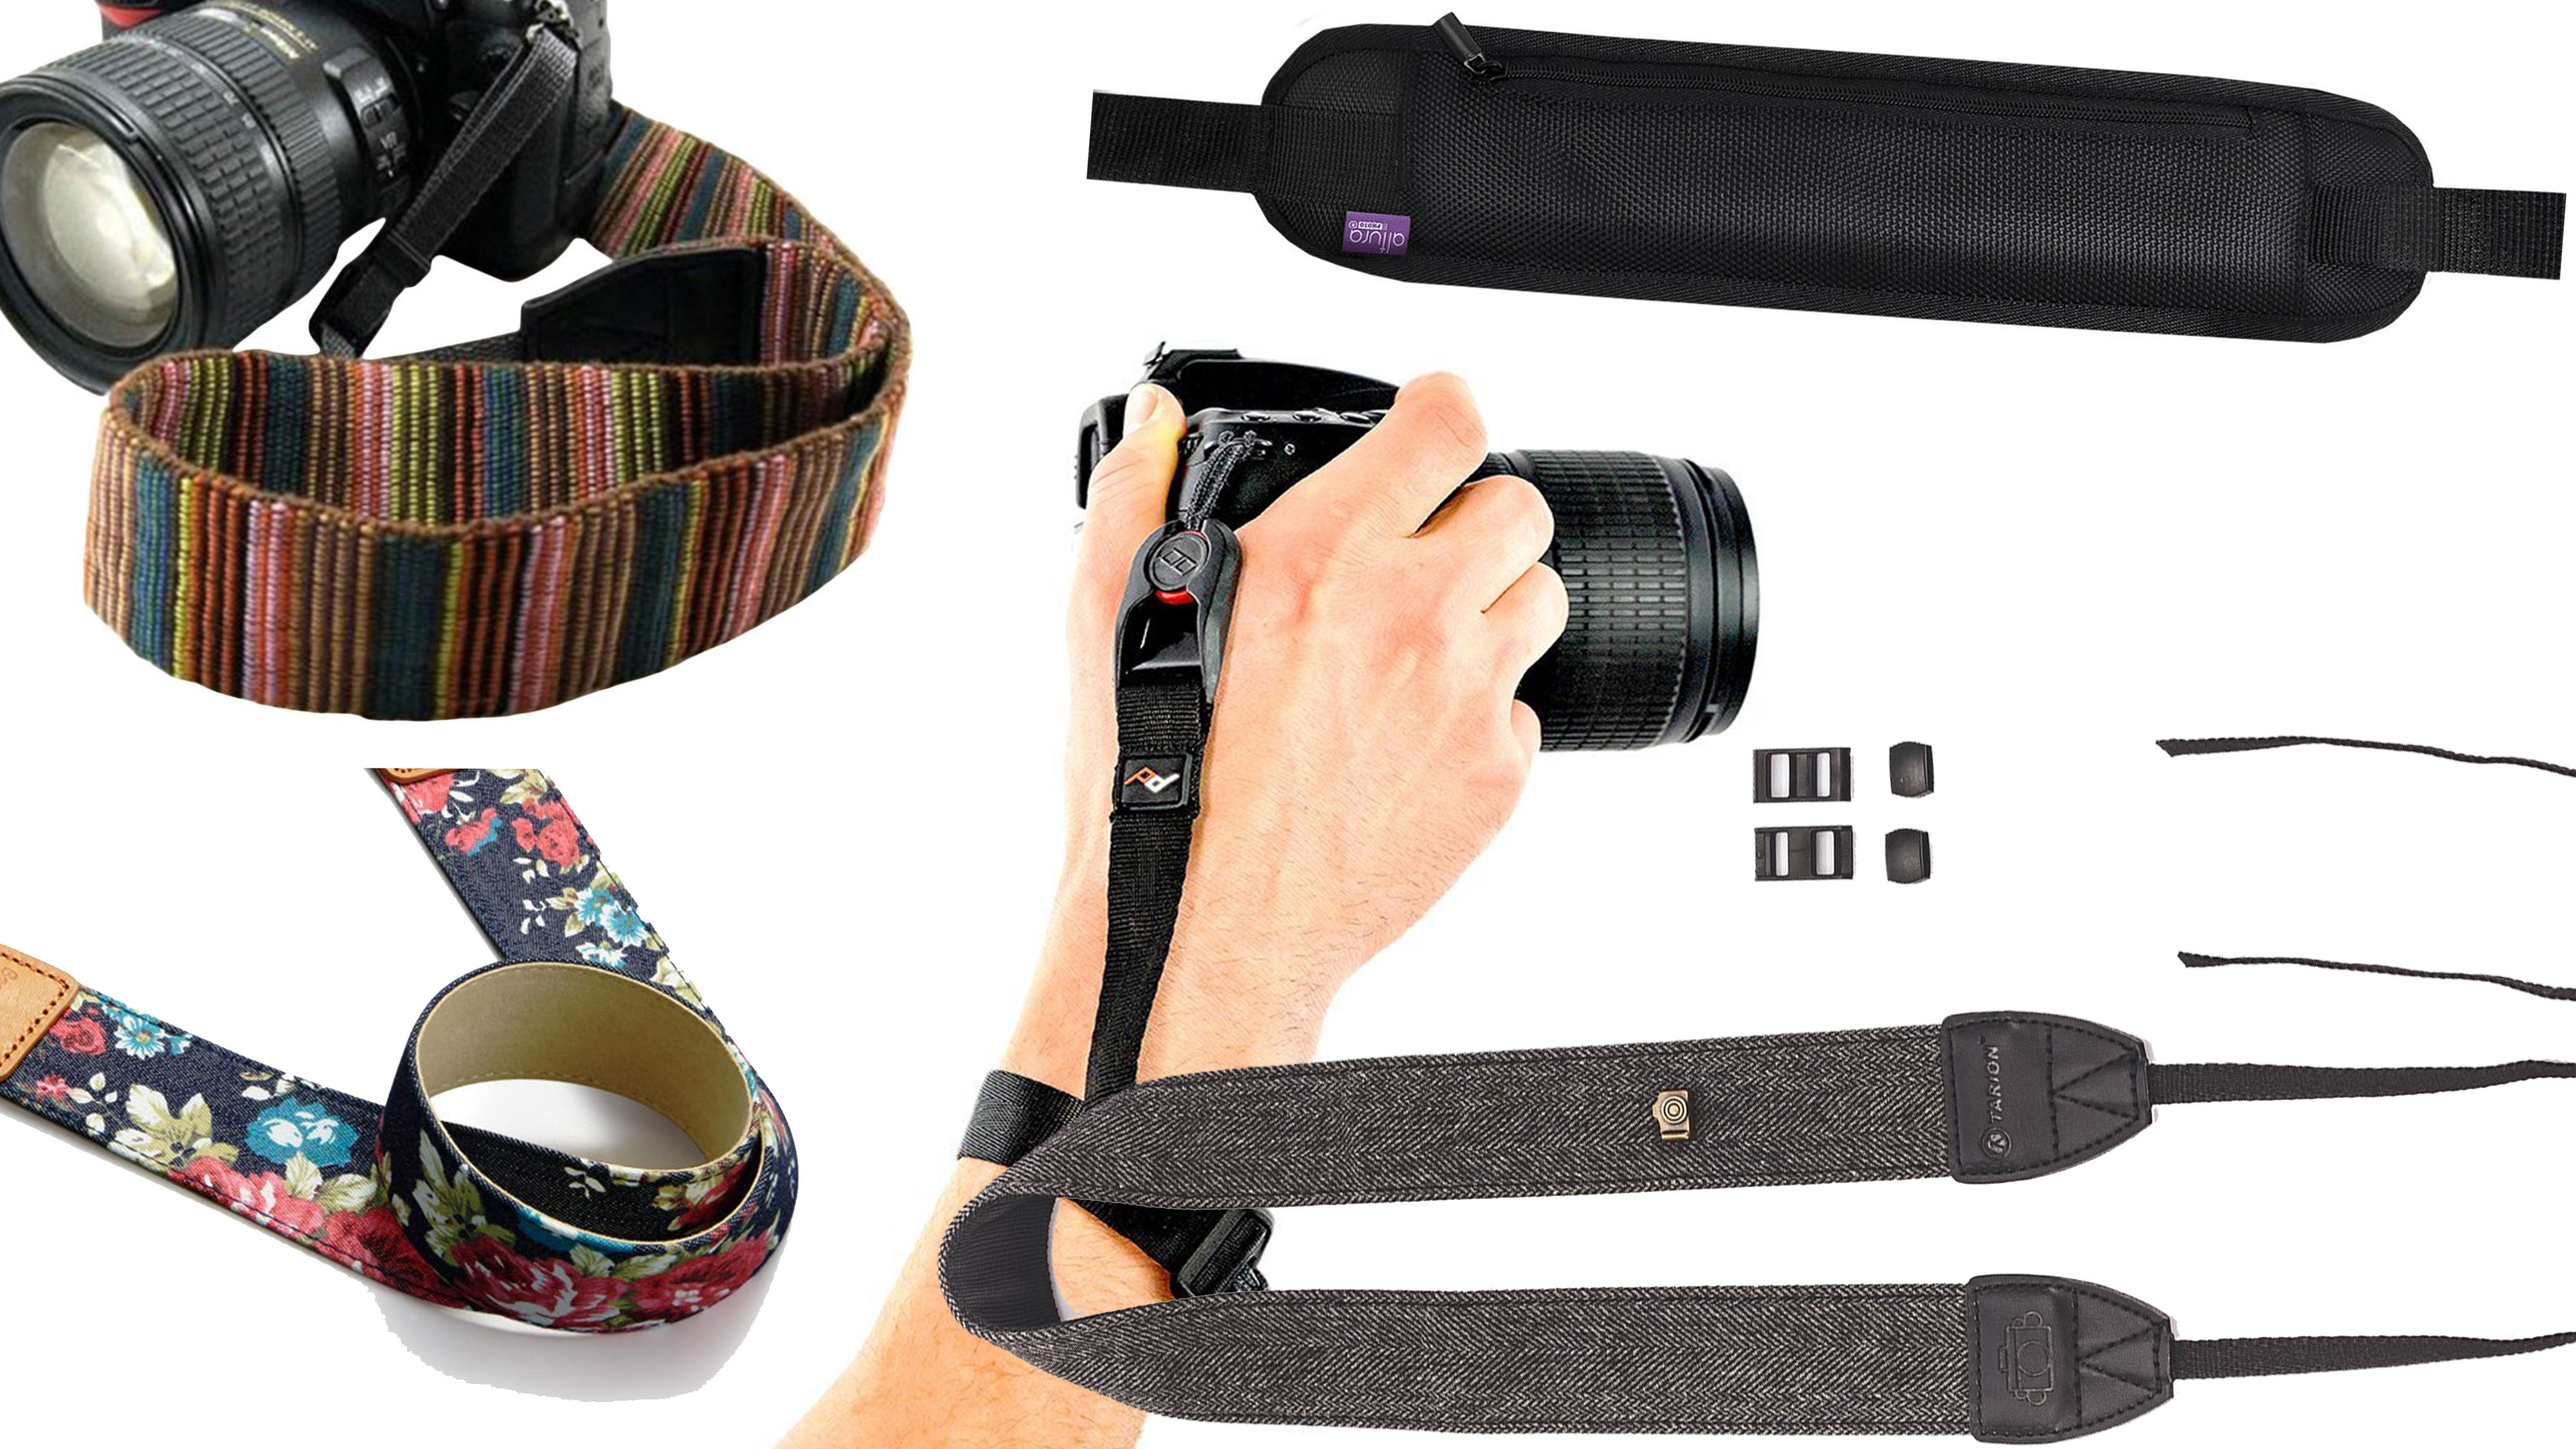 feature-image,-camera-strap,-best-camera-strap,-dslr-camera-straps-